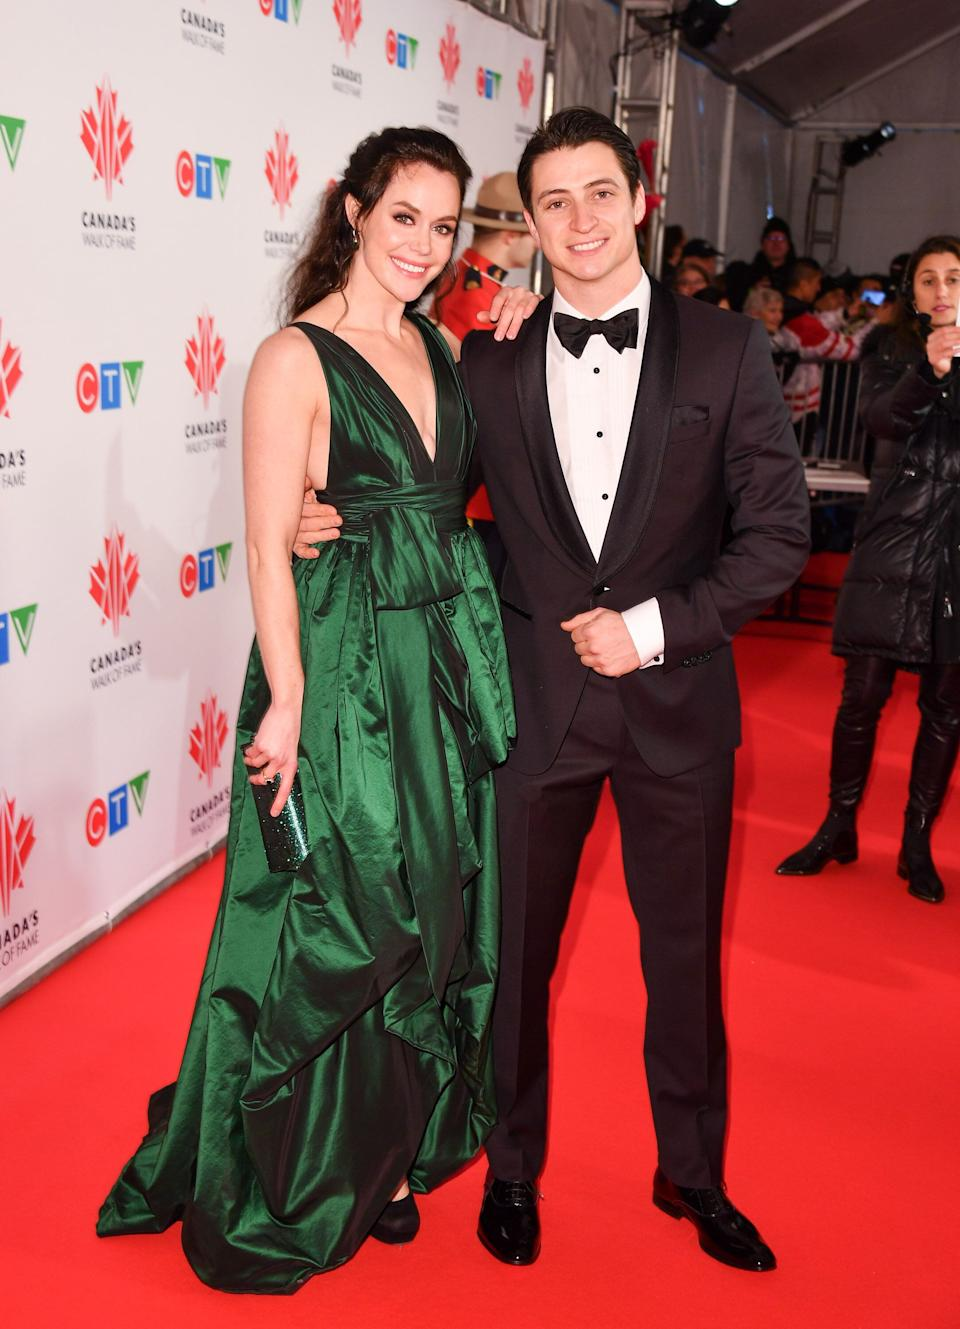 Virtue and ice dancing partner Scott Moir at their induction into Canada's Walk of Fame.  (Photo by George Pimentel/Getty Images)